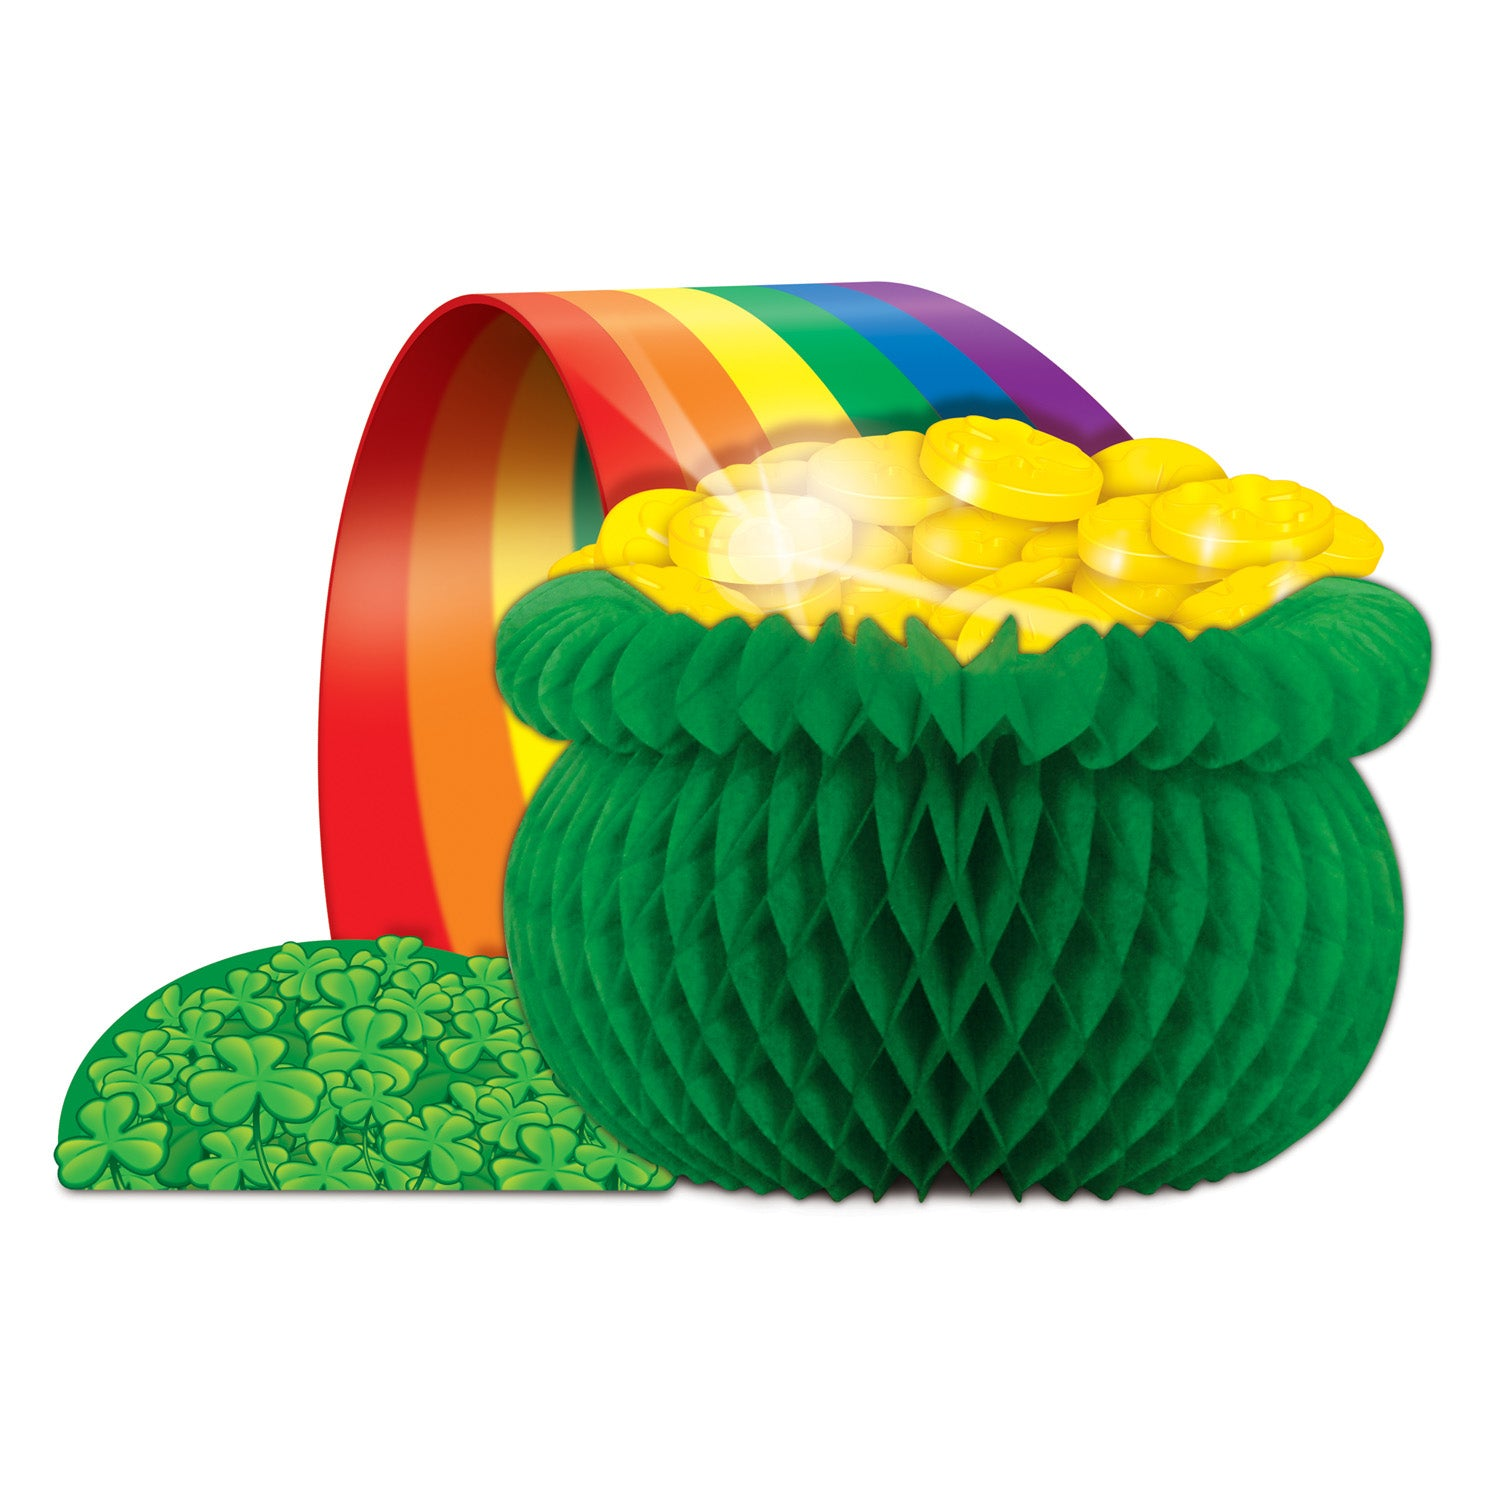 Pot O' Gold Centerpiece by Beistle - St. Patricks Day Theme Decorations